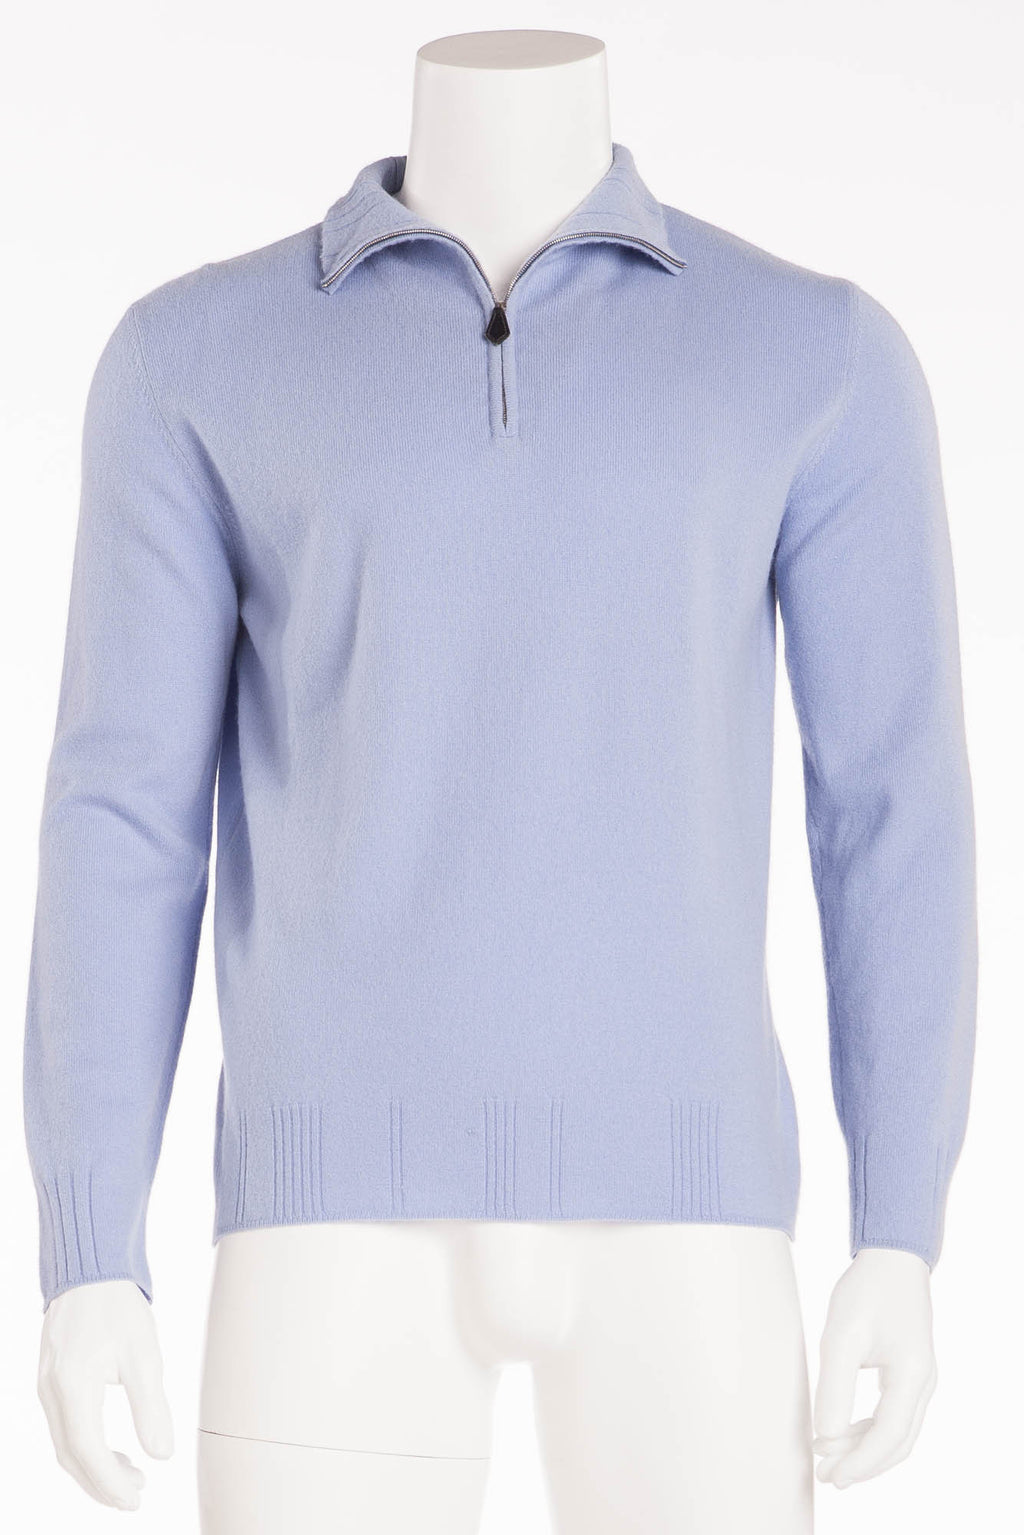 Authentic Hermes - Sky Blue Zip Neck Sweater - XL